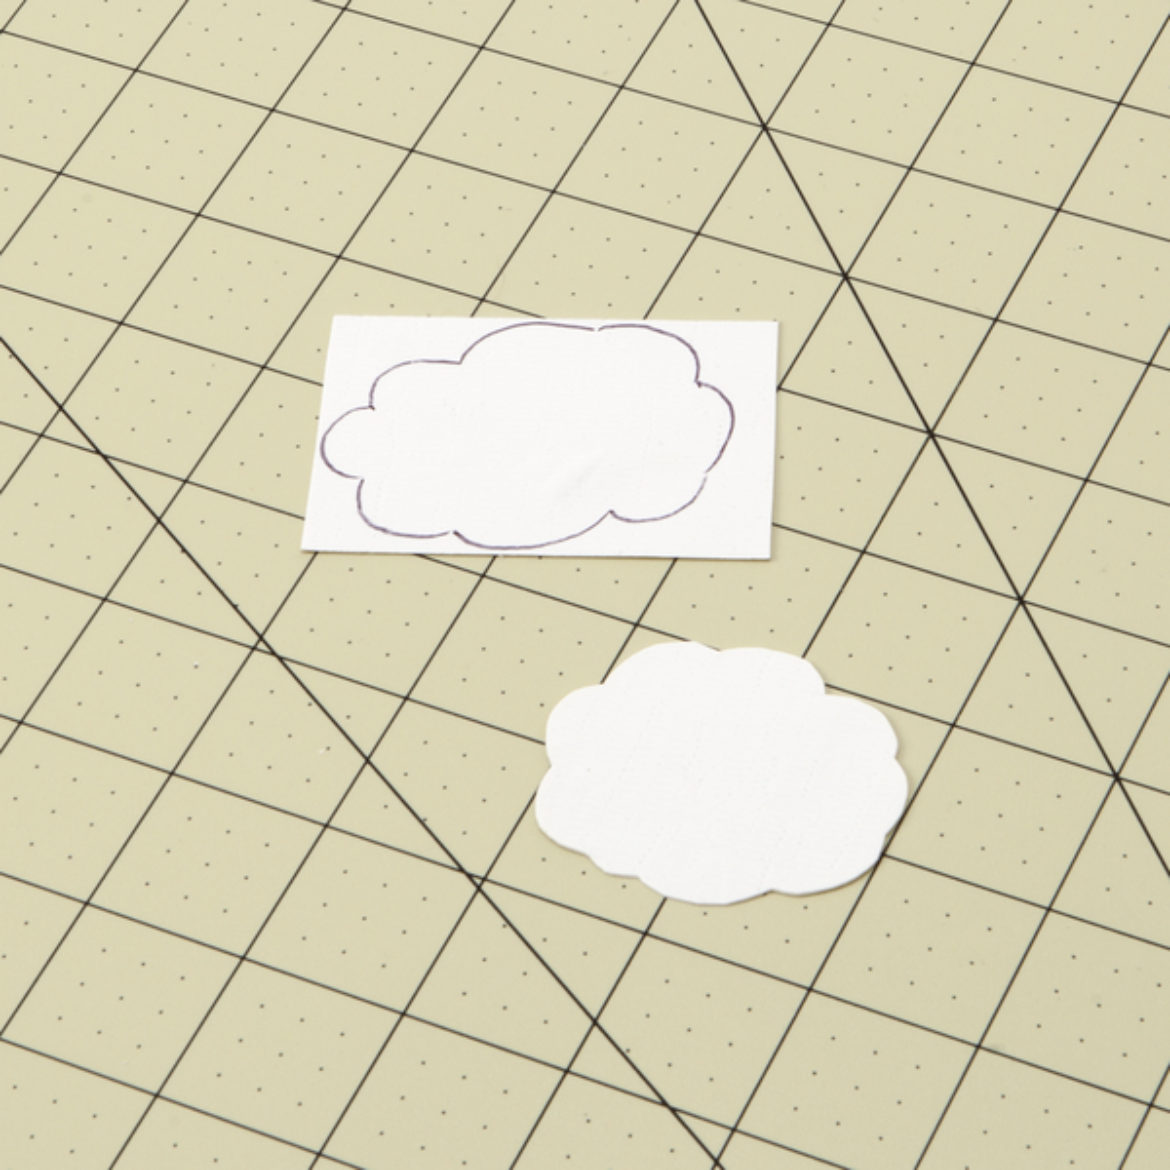 Cloud shape drawn onto and cut out of a piece of white Duck Tape fabric